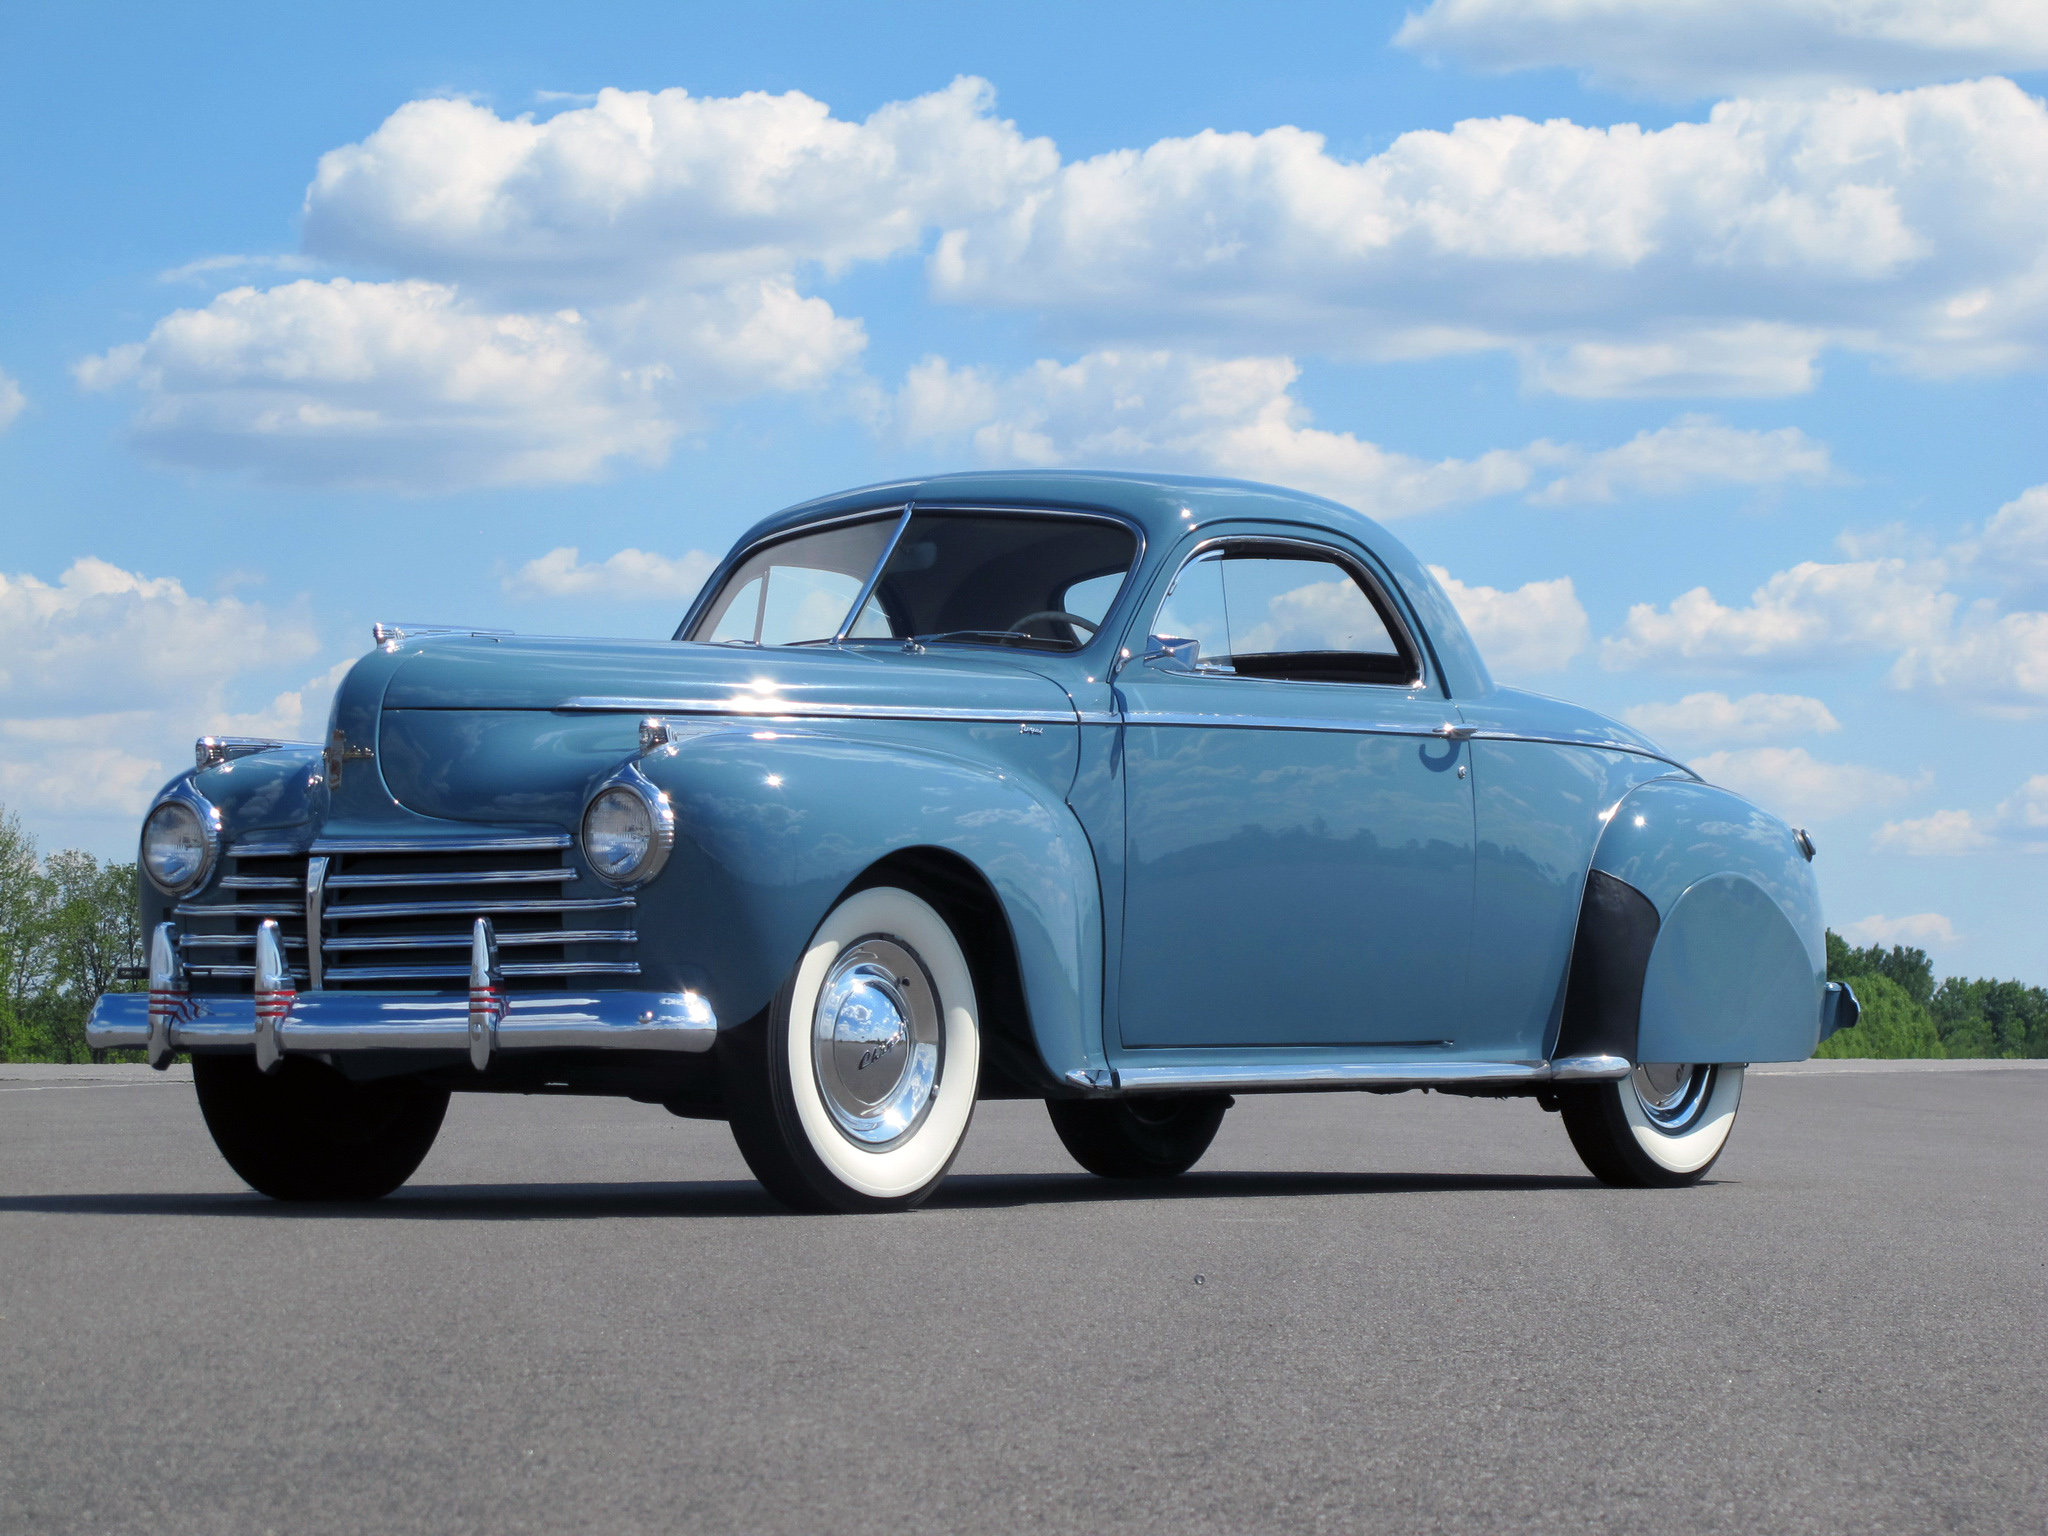 1941 chrysler royal coupe retro wallpaper 2048x1536 for 1941 chrysler royal 3 window coupe